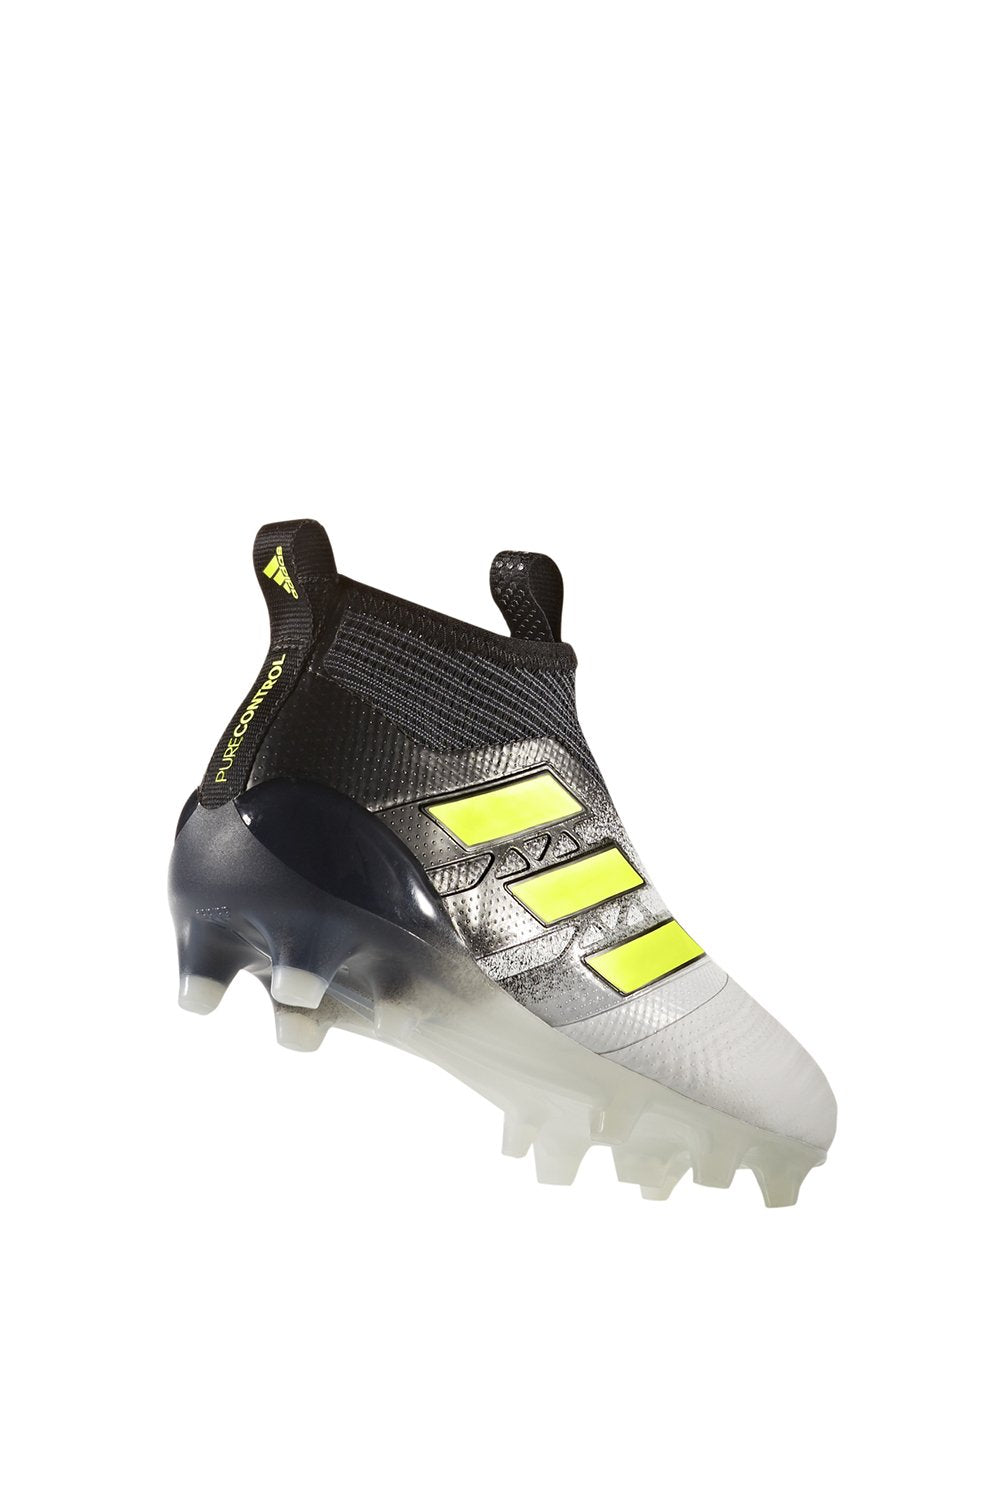 Youth Ace 17+ PureControl FG by Adidas Usa at Gazelle Sports ... d85ae4070